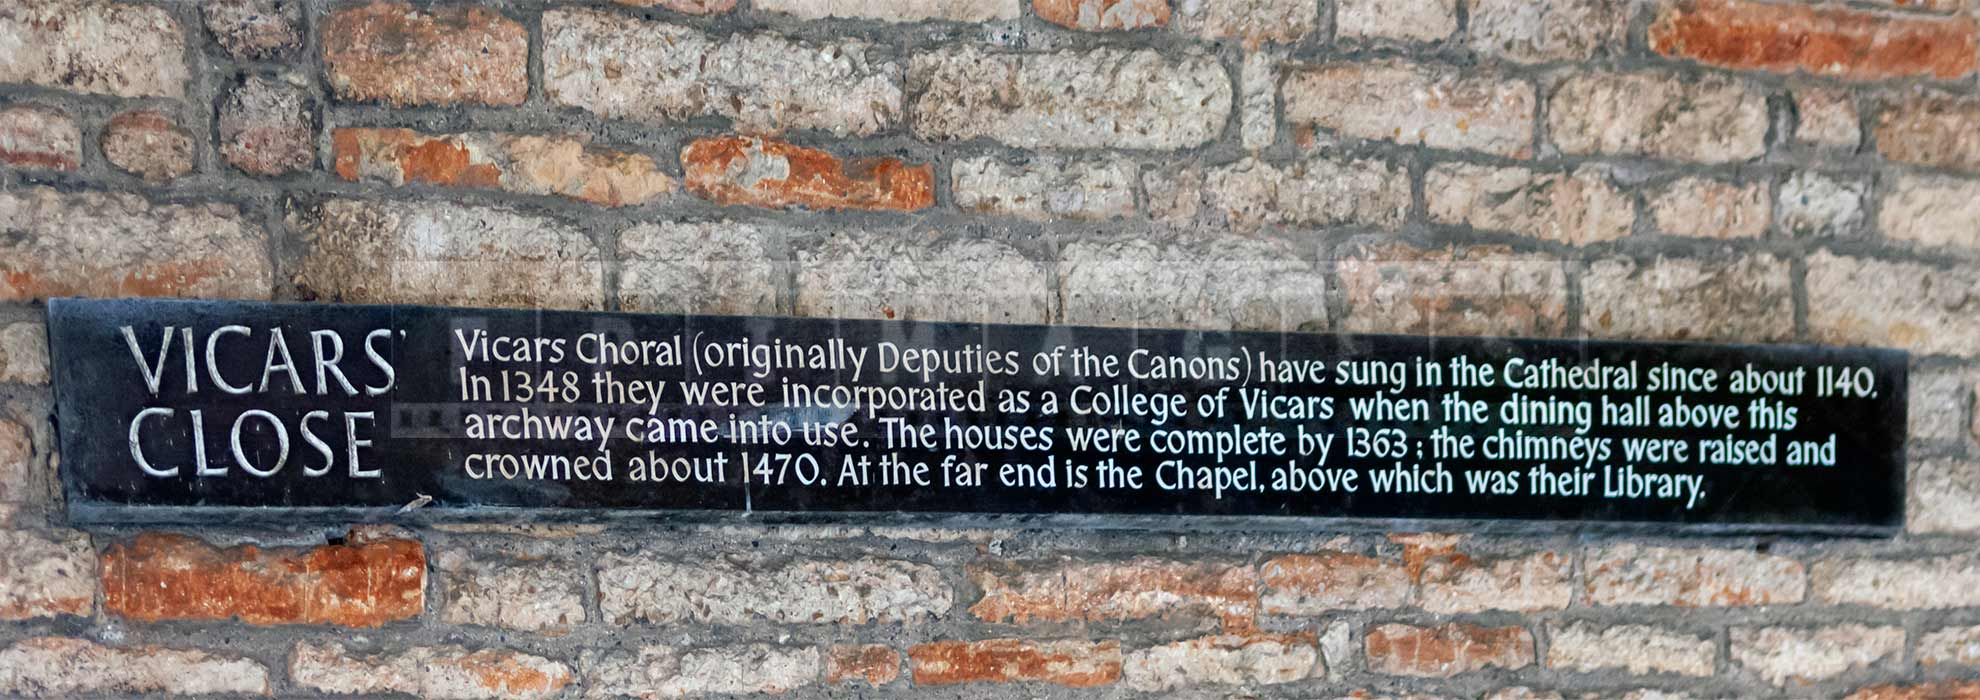 history of Vicars Close